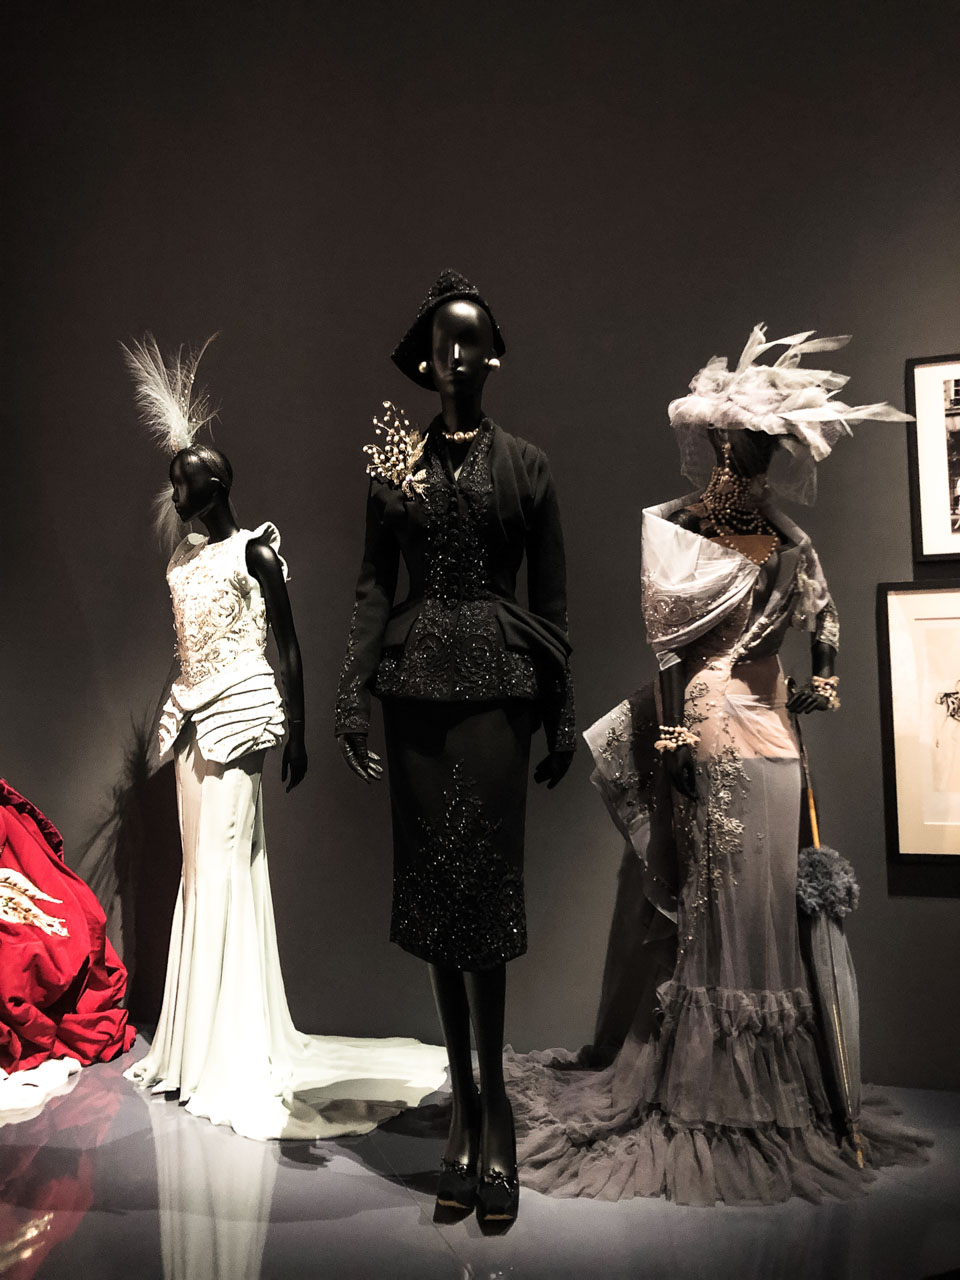 Creations of John Galliano for Dior at the Victoria and Albert Museum in London